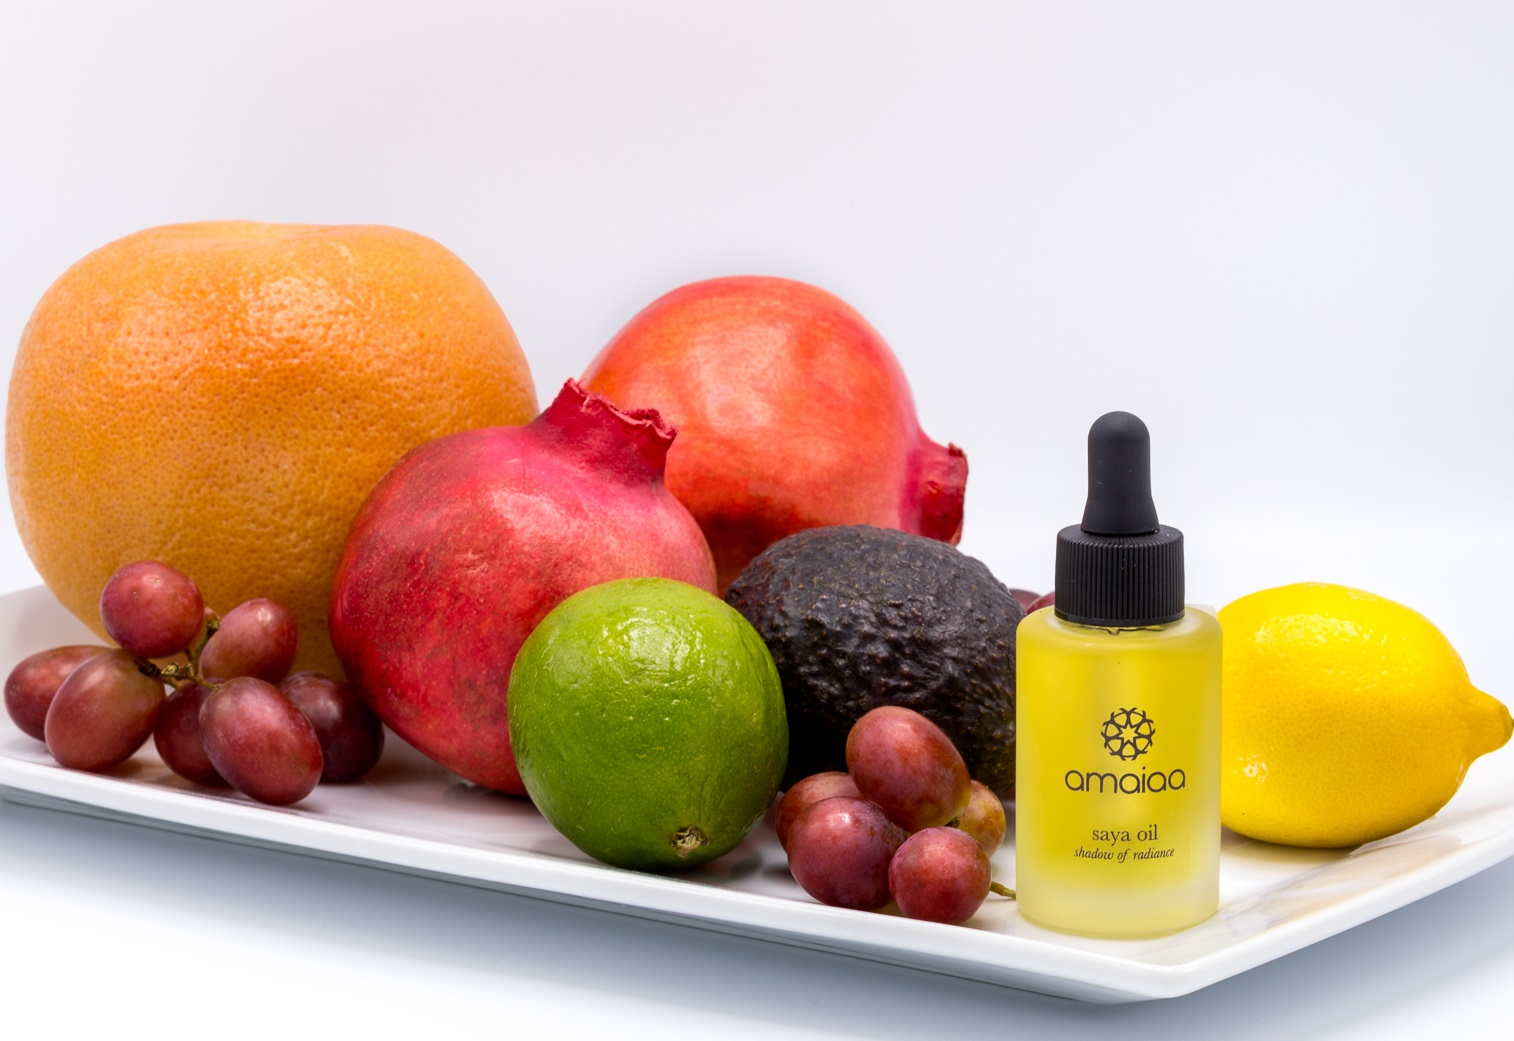 saya all natural facial elixir oil with fruits